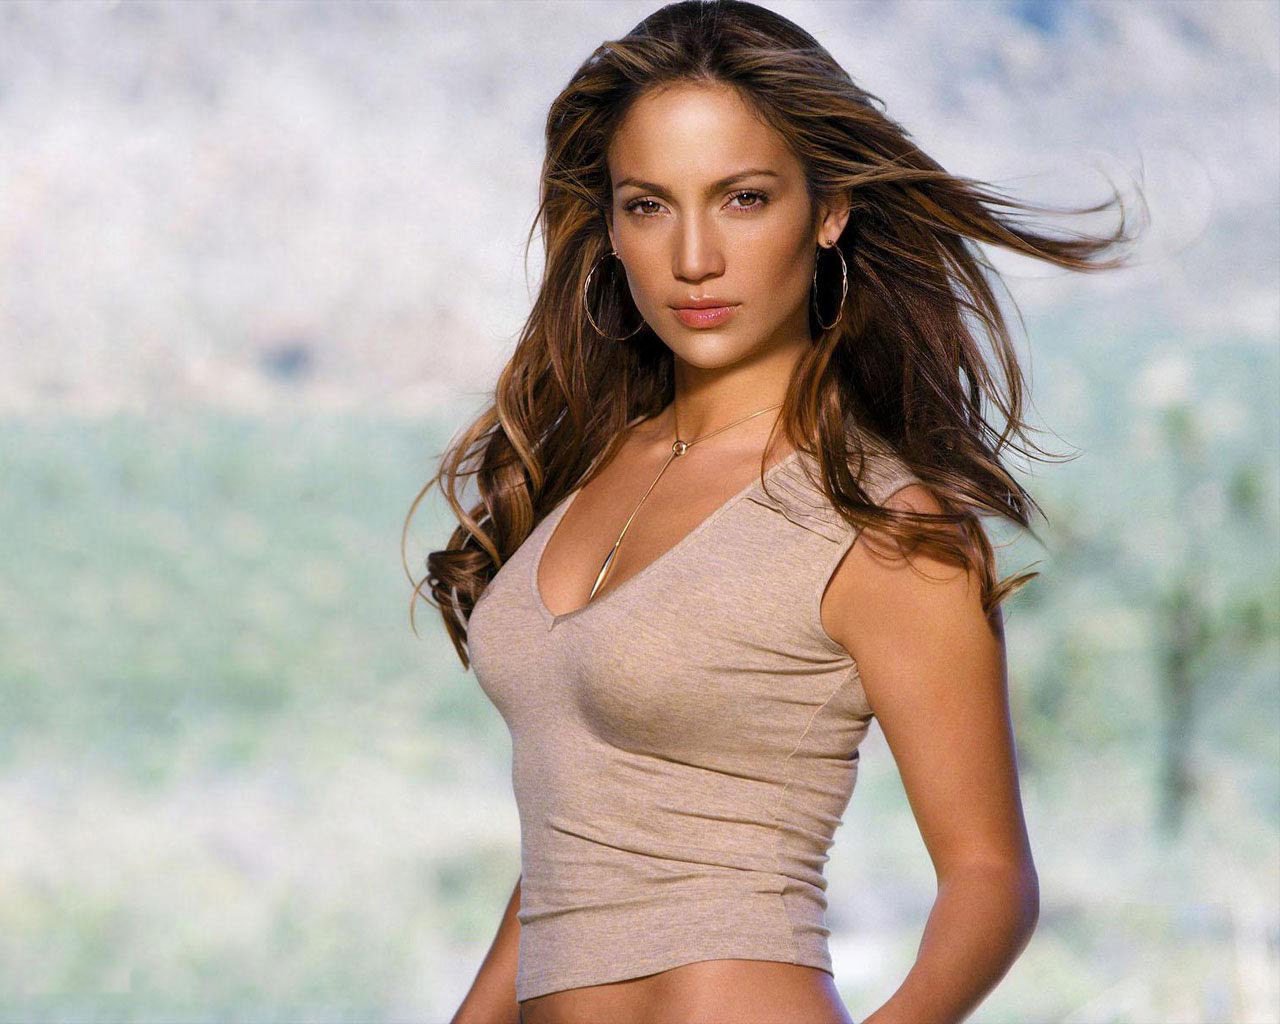 Jennifer Lopez Latest Hot Hd Wallpapers 2013 Its All About